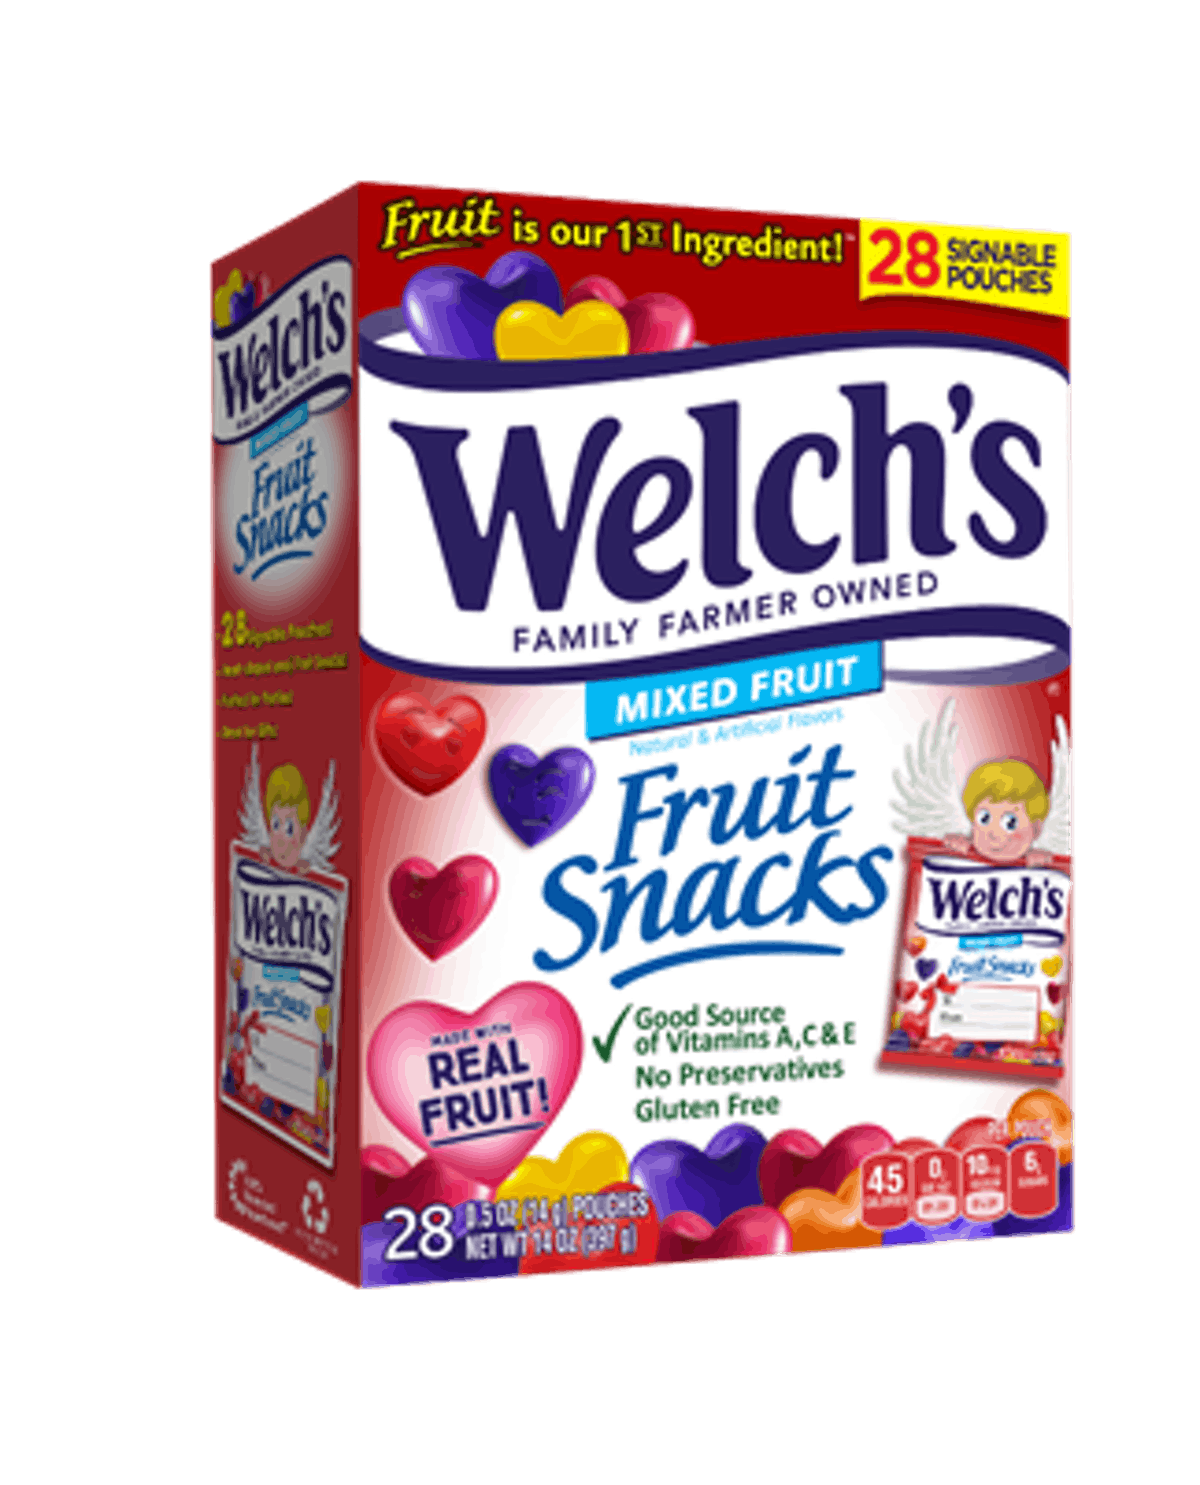 Welch's Valentine's Day Snacks are the perfect gifts.